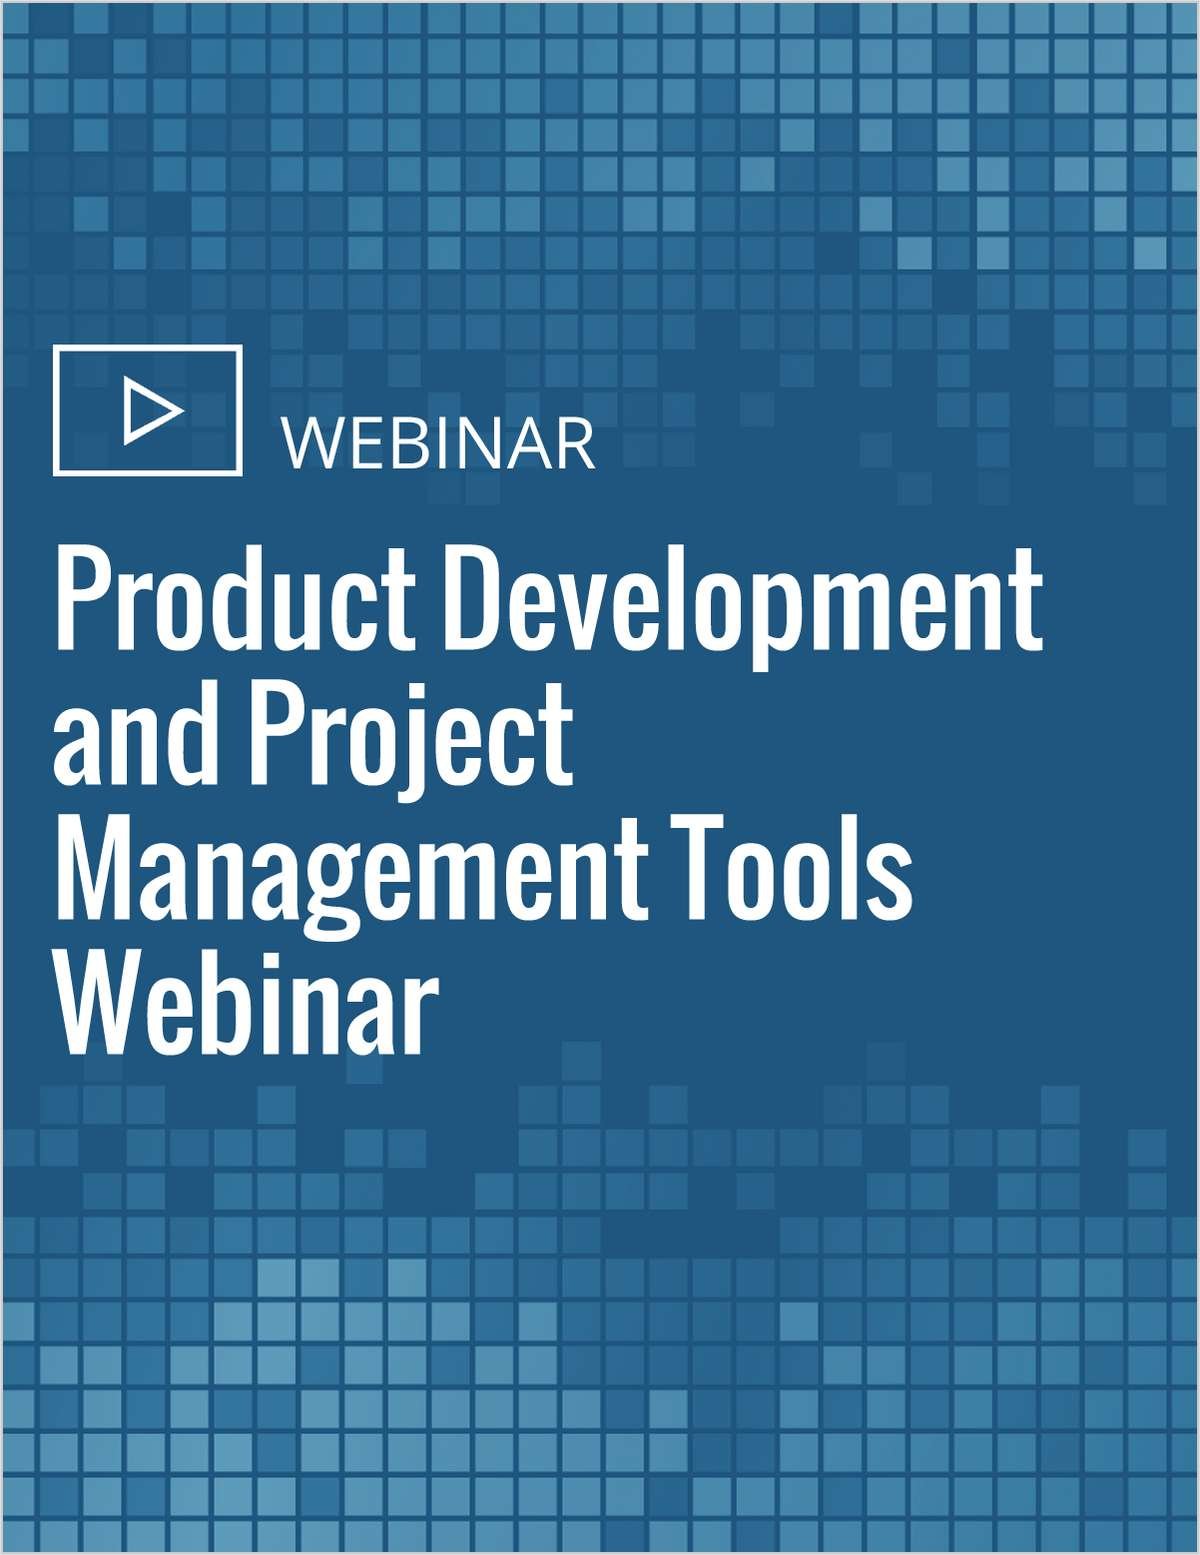 Product Development and Project Management Tools Webinar